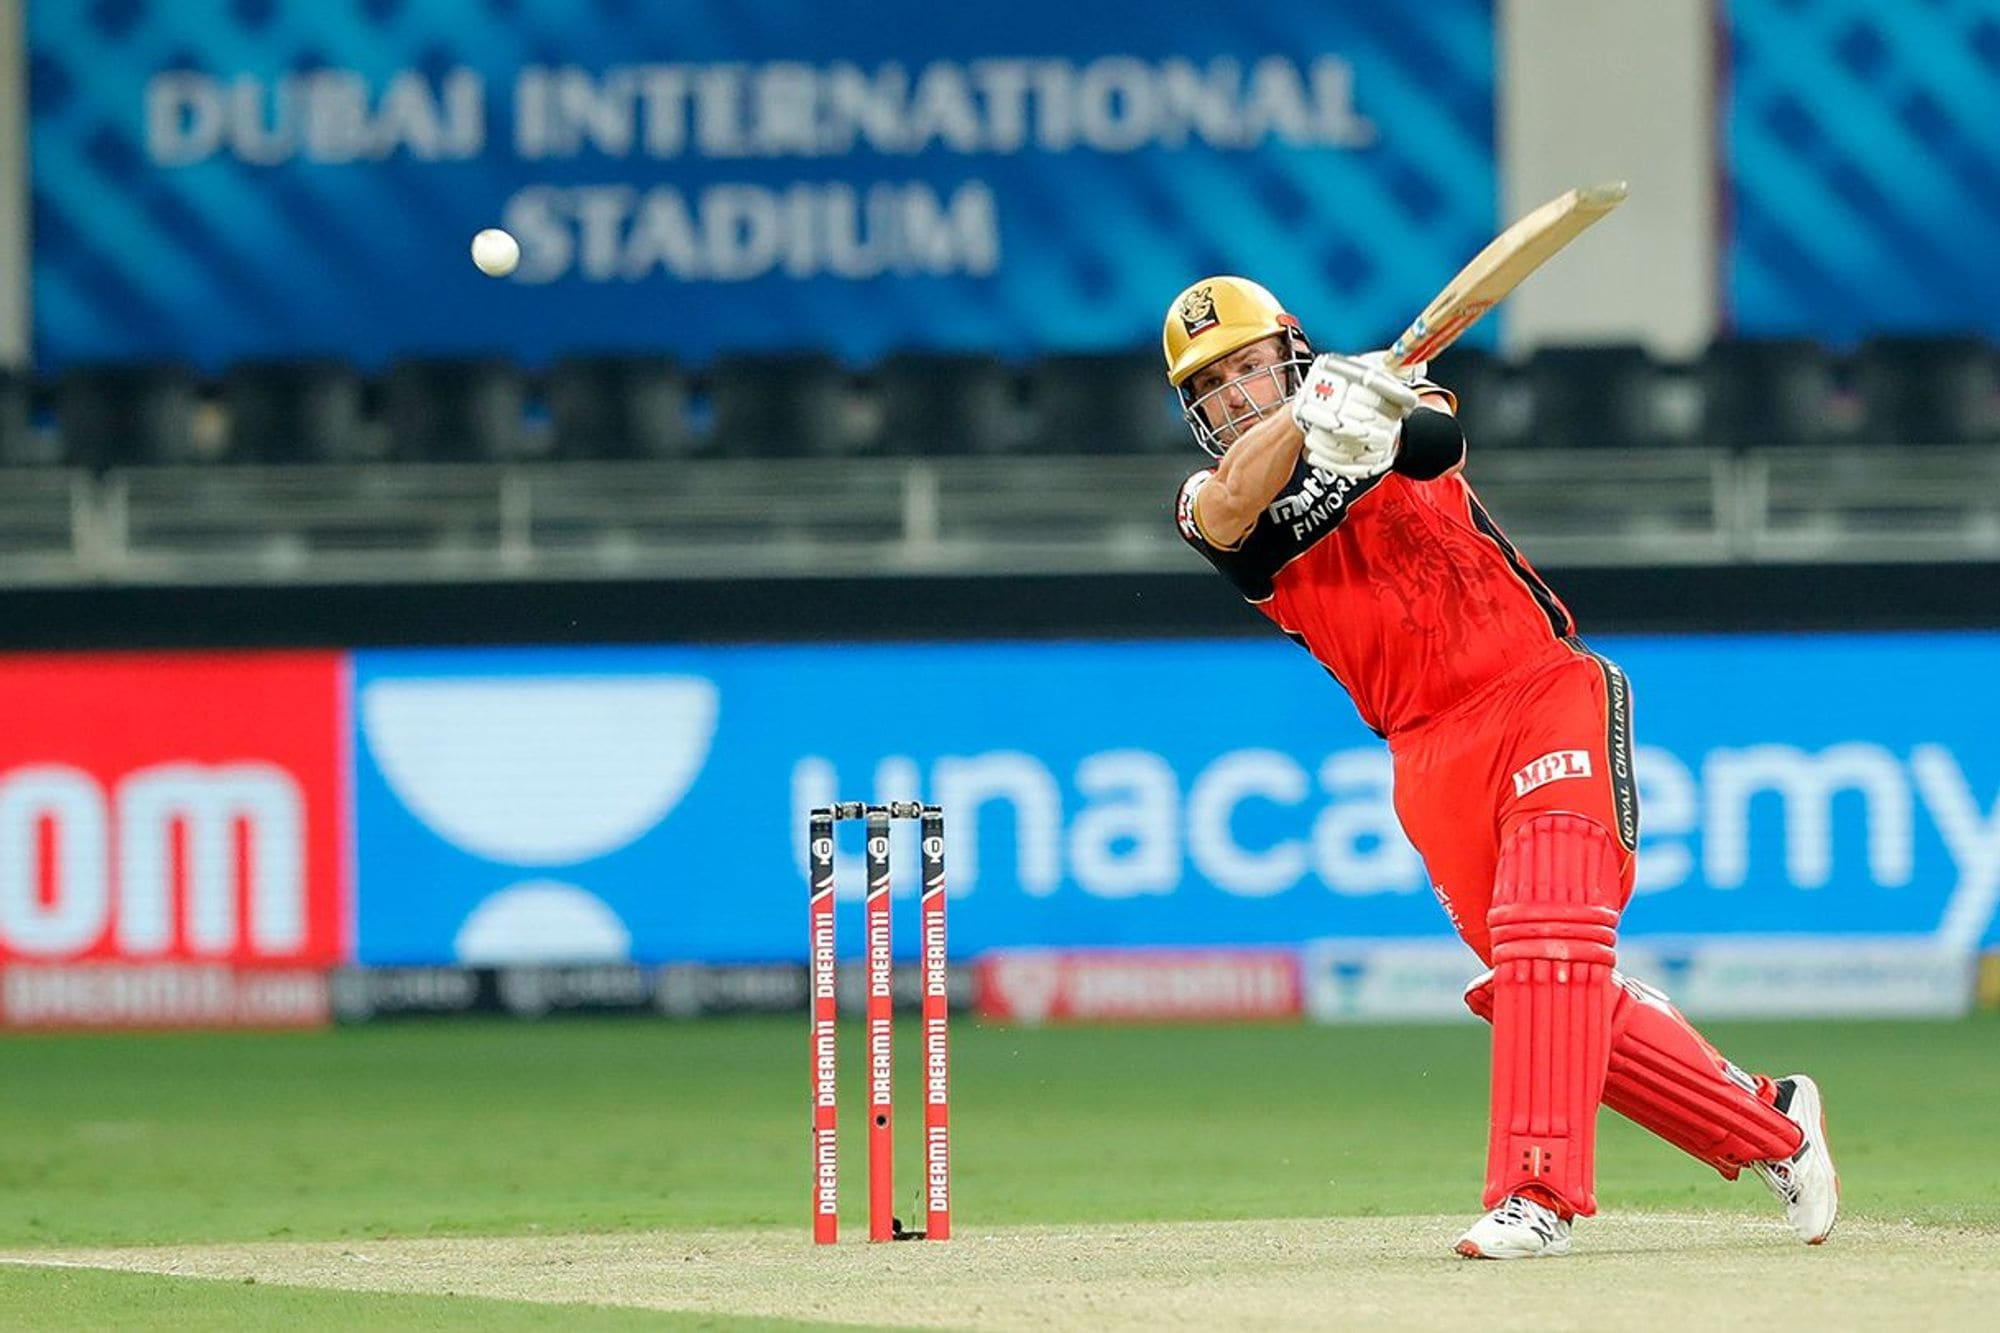 IPL 2020: In Pictures, Royal Challengers Bangalore vs Mumbai Indians, Match 10 at Dubai